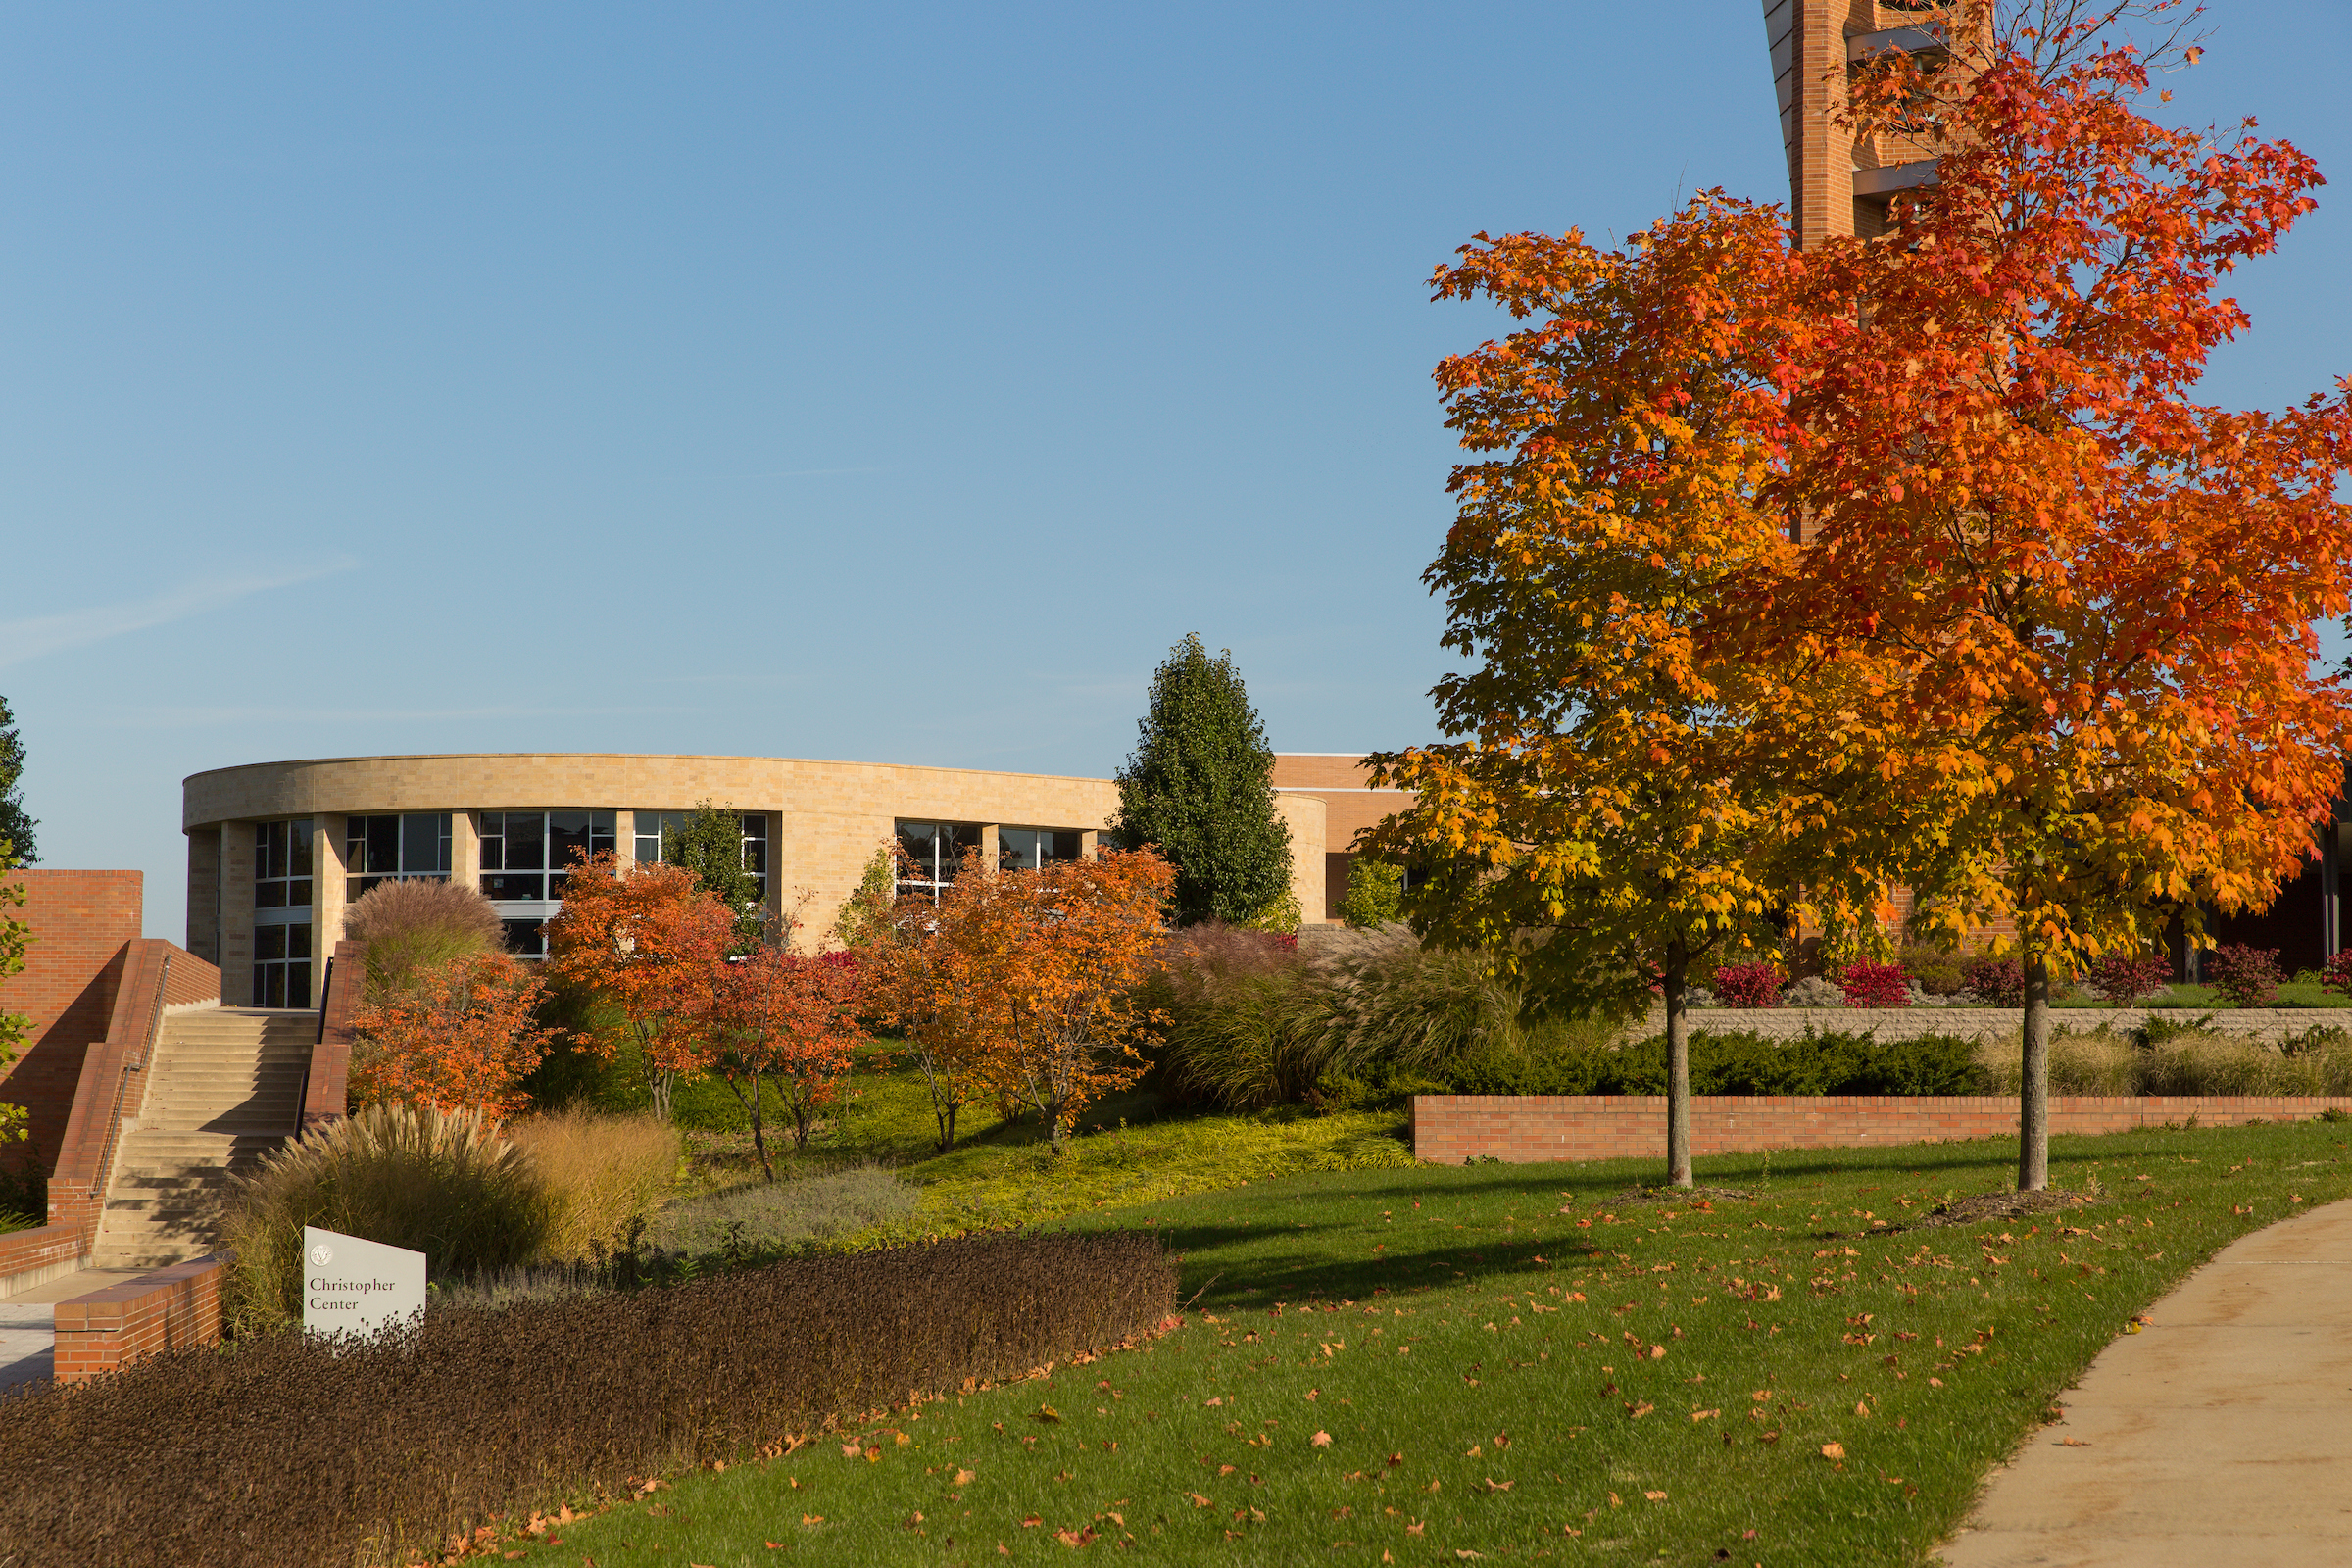 View of union with fall leaves on tree